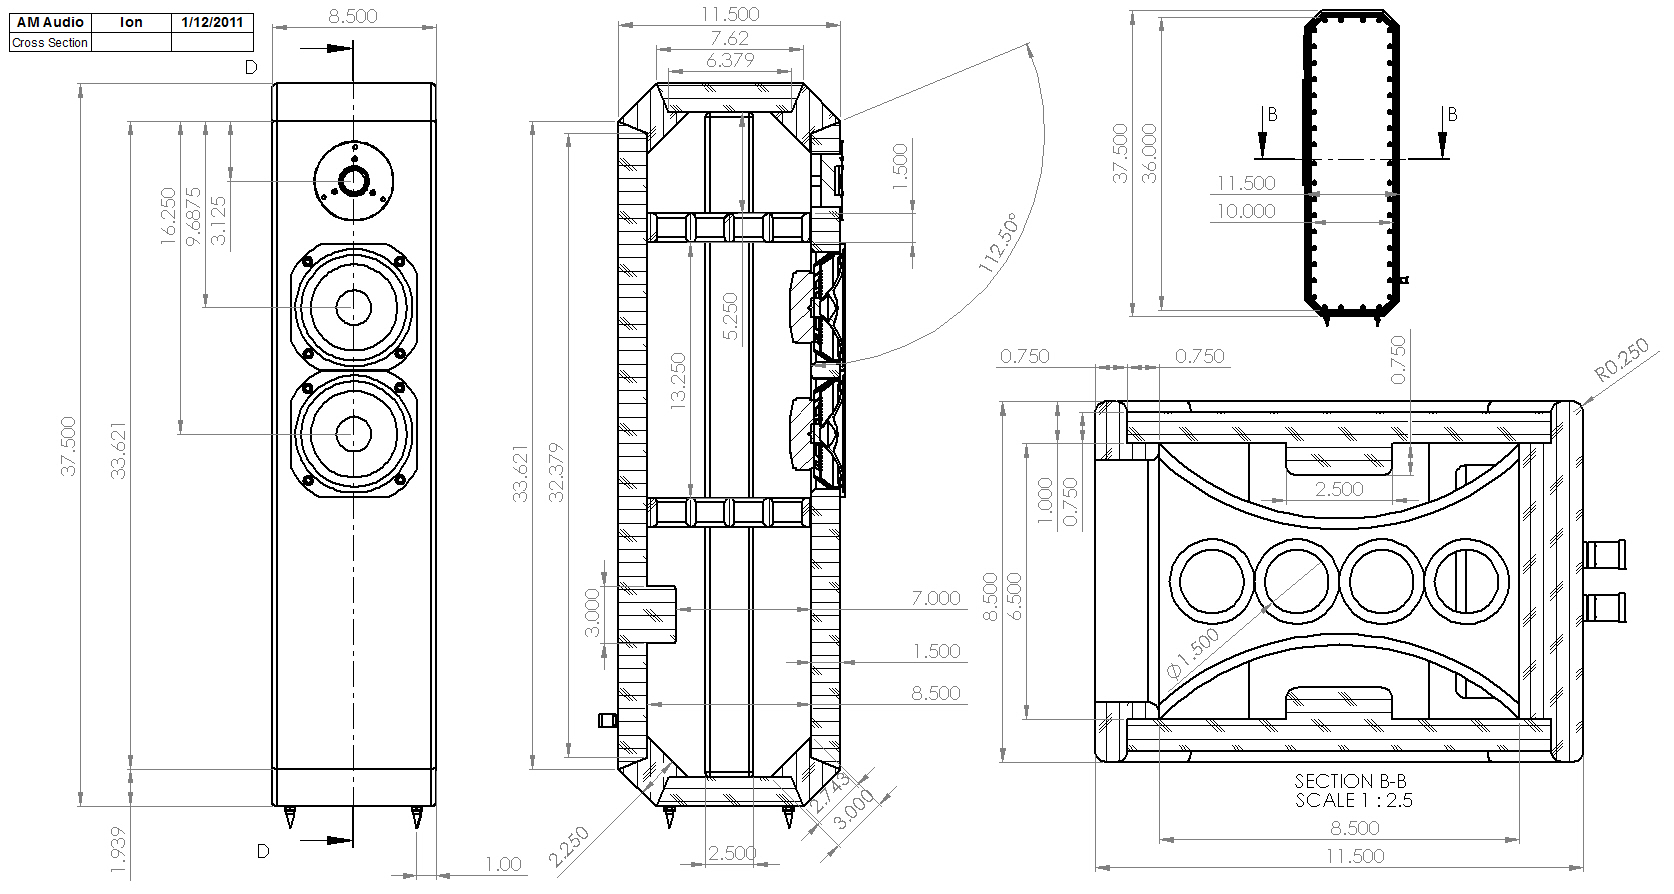 Ion-Enclosure-Drawing  Way Crossover Wiring Schematic on klh model 20 speakers, altec lansing, speakerlab horn, snell type elll, kef c95 3-way, klipsch alk, best mid-range, realistic model one, alon iv, altec lansing model 19, jbl l100,